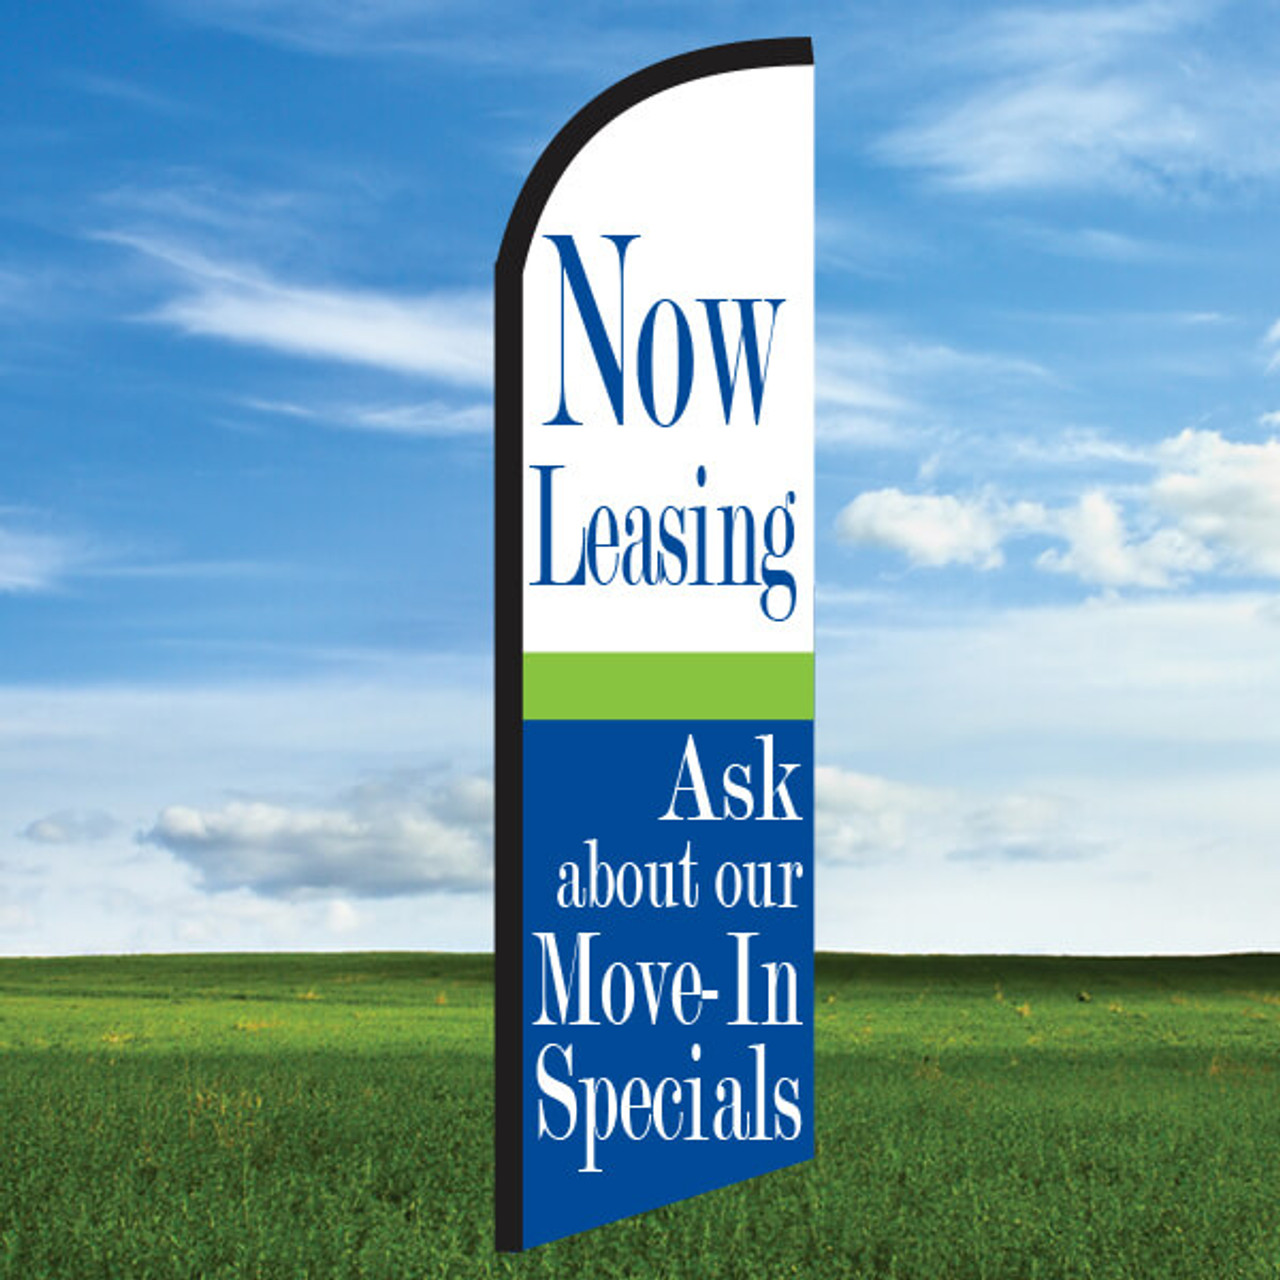 Cheerful: Now Leasing/Ask About Our Move-in Specials- Windleasers 24/7 Widebody Flag